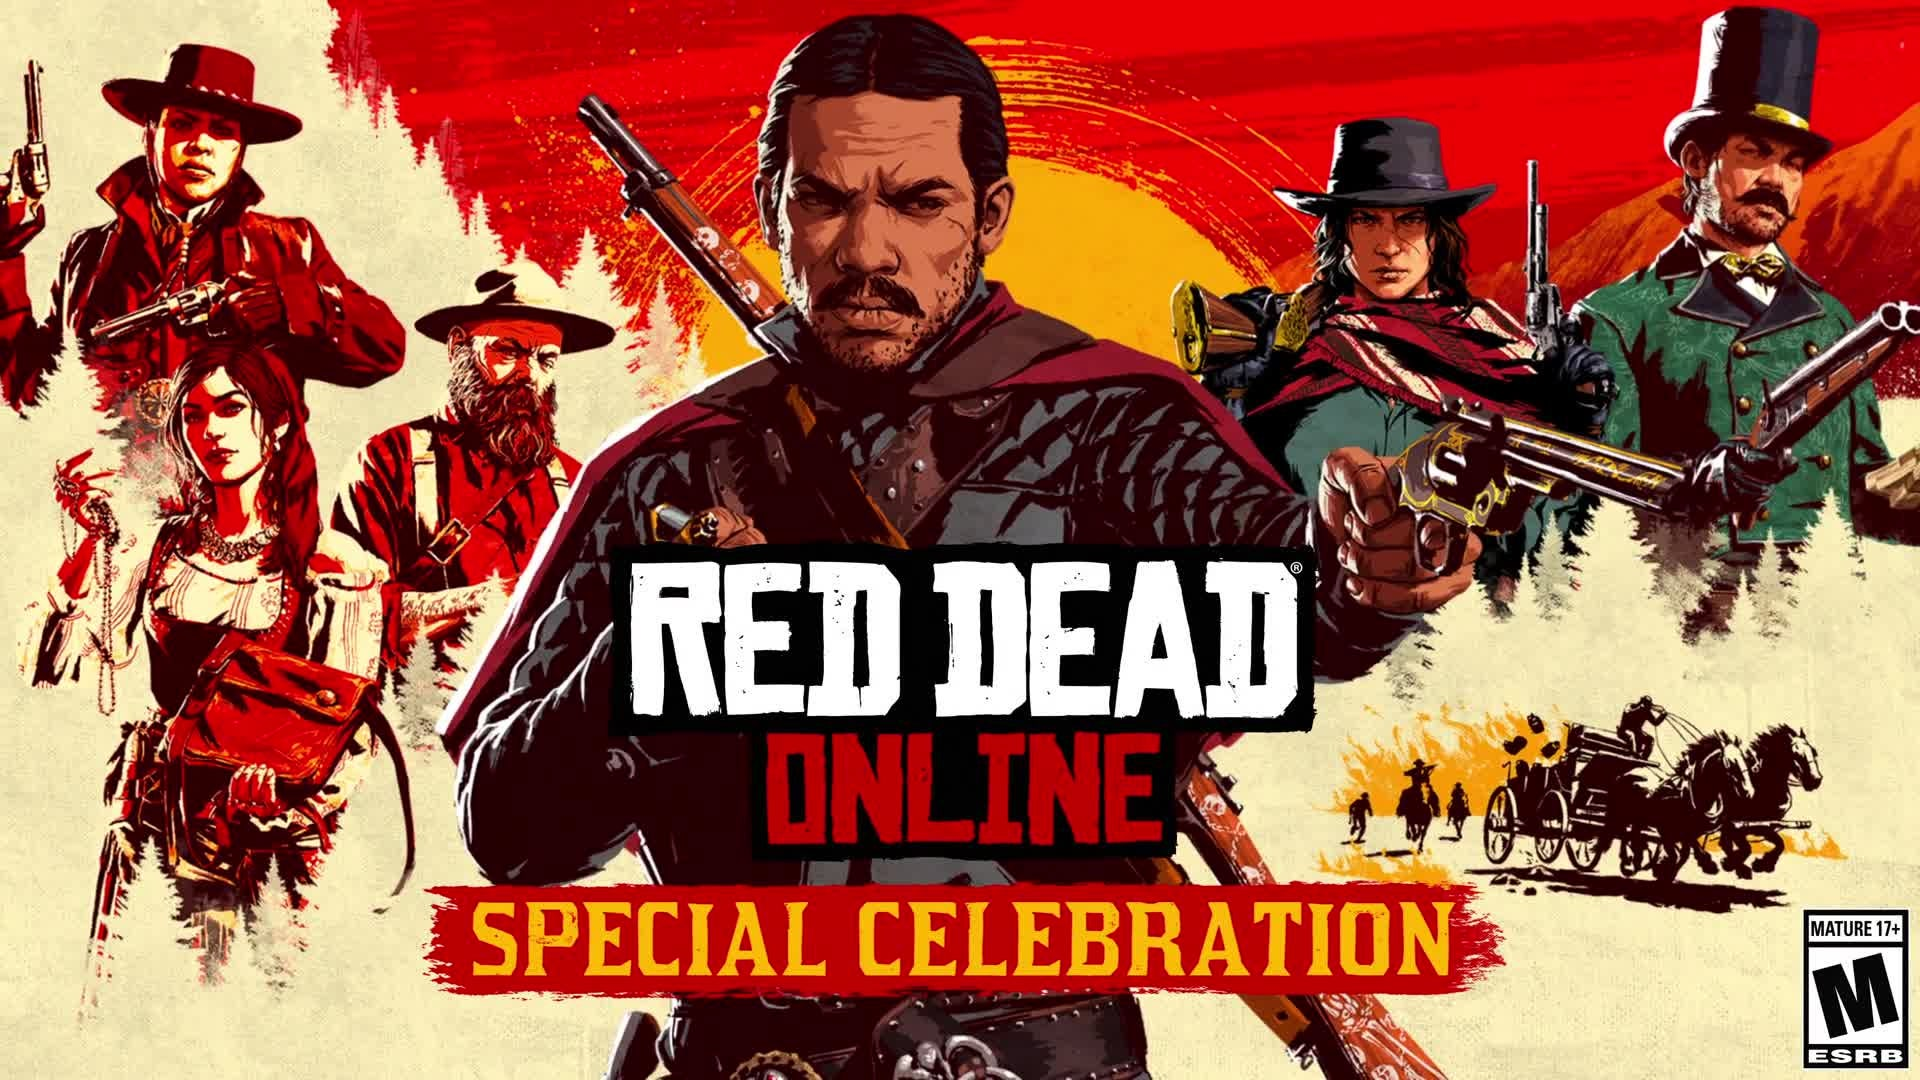 Red Dead Redemption: General - GET THE BOUNTY HUNTER'S KIT IN RED DEAD ONLINE video cover image 1